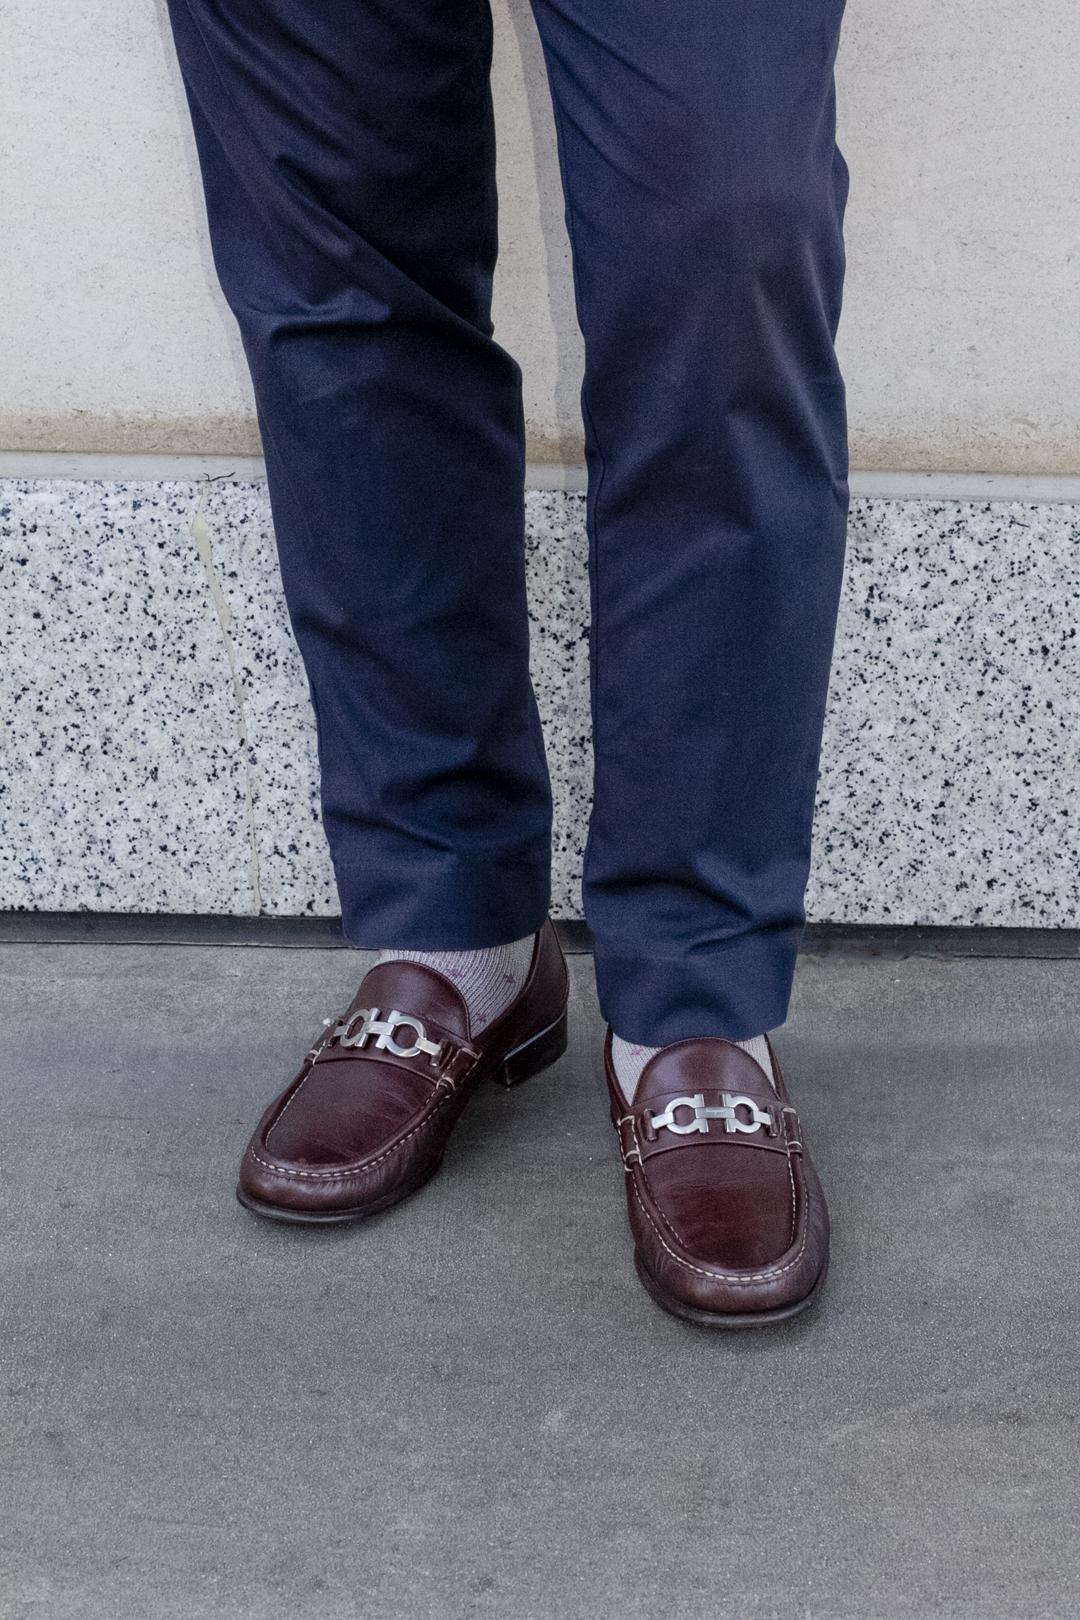 salvatore ferragamo shoes and a pattern outfit